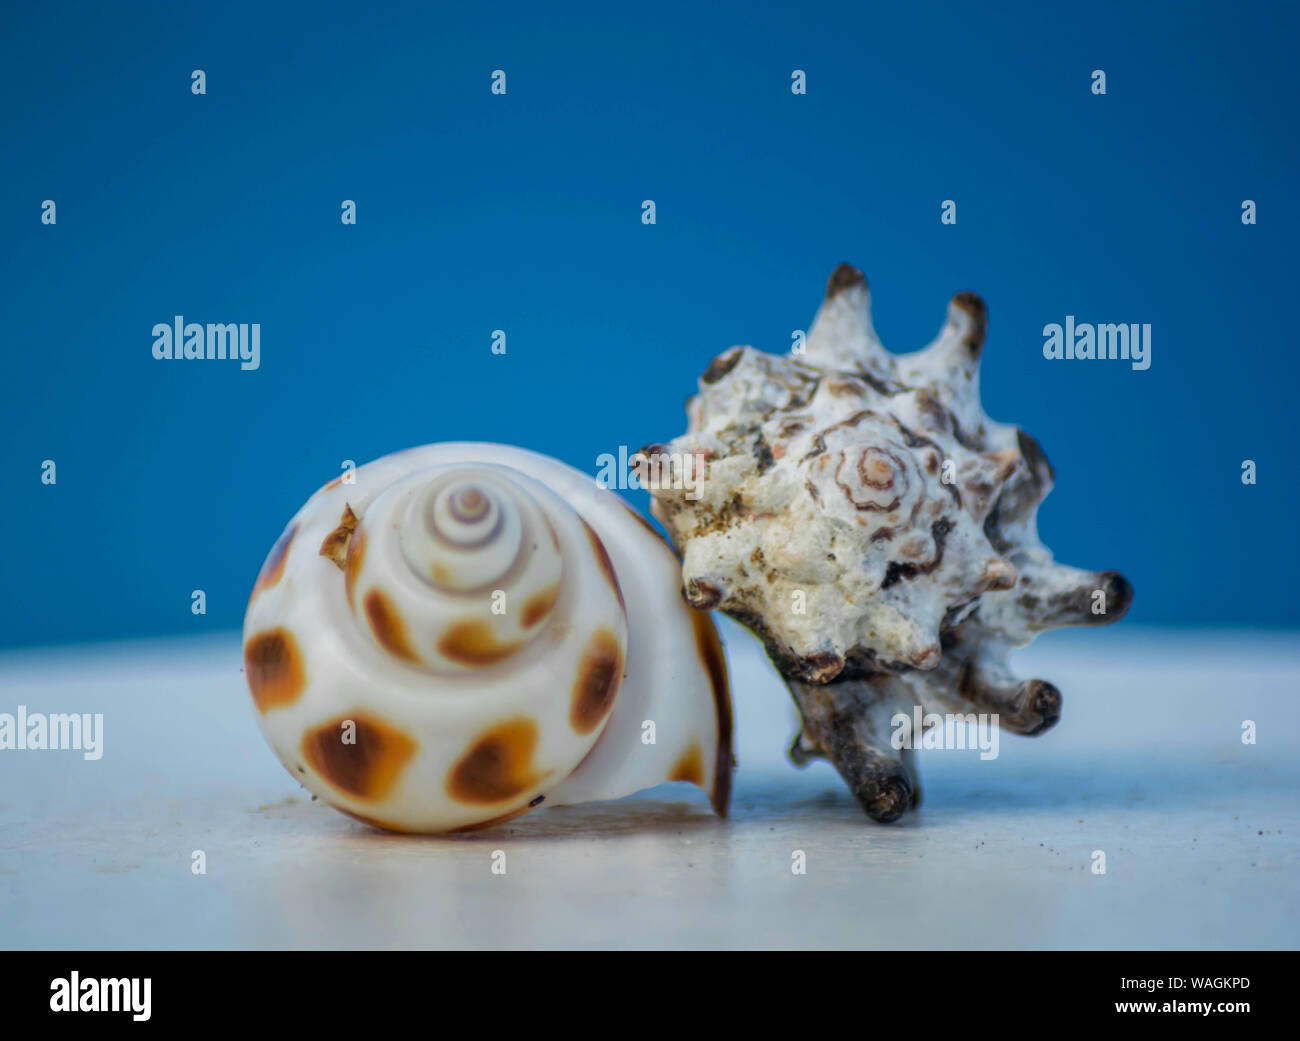 Two seashells on top of each other in a nice soft blue background. Big seashell on the beach close up. Sea shell isolated on blue background. Stock Photo